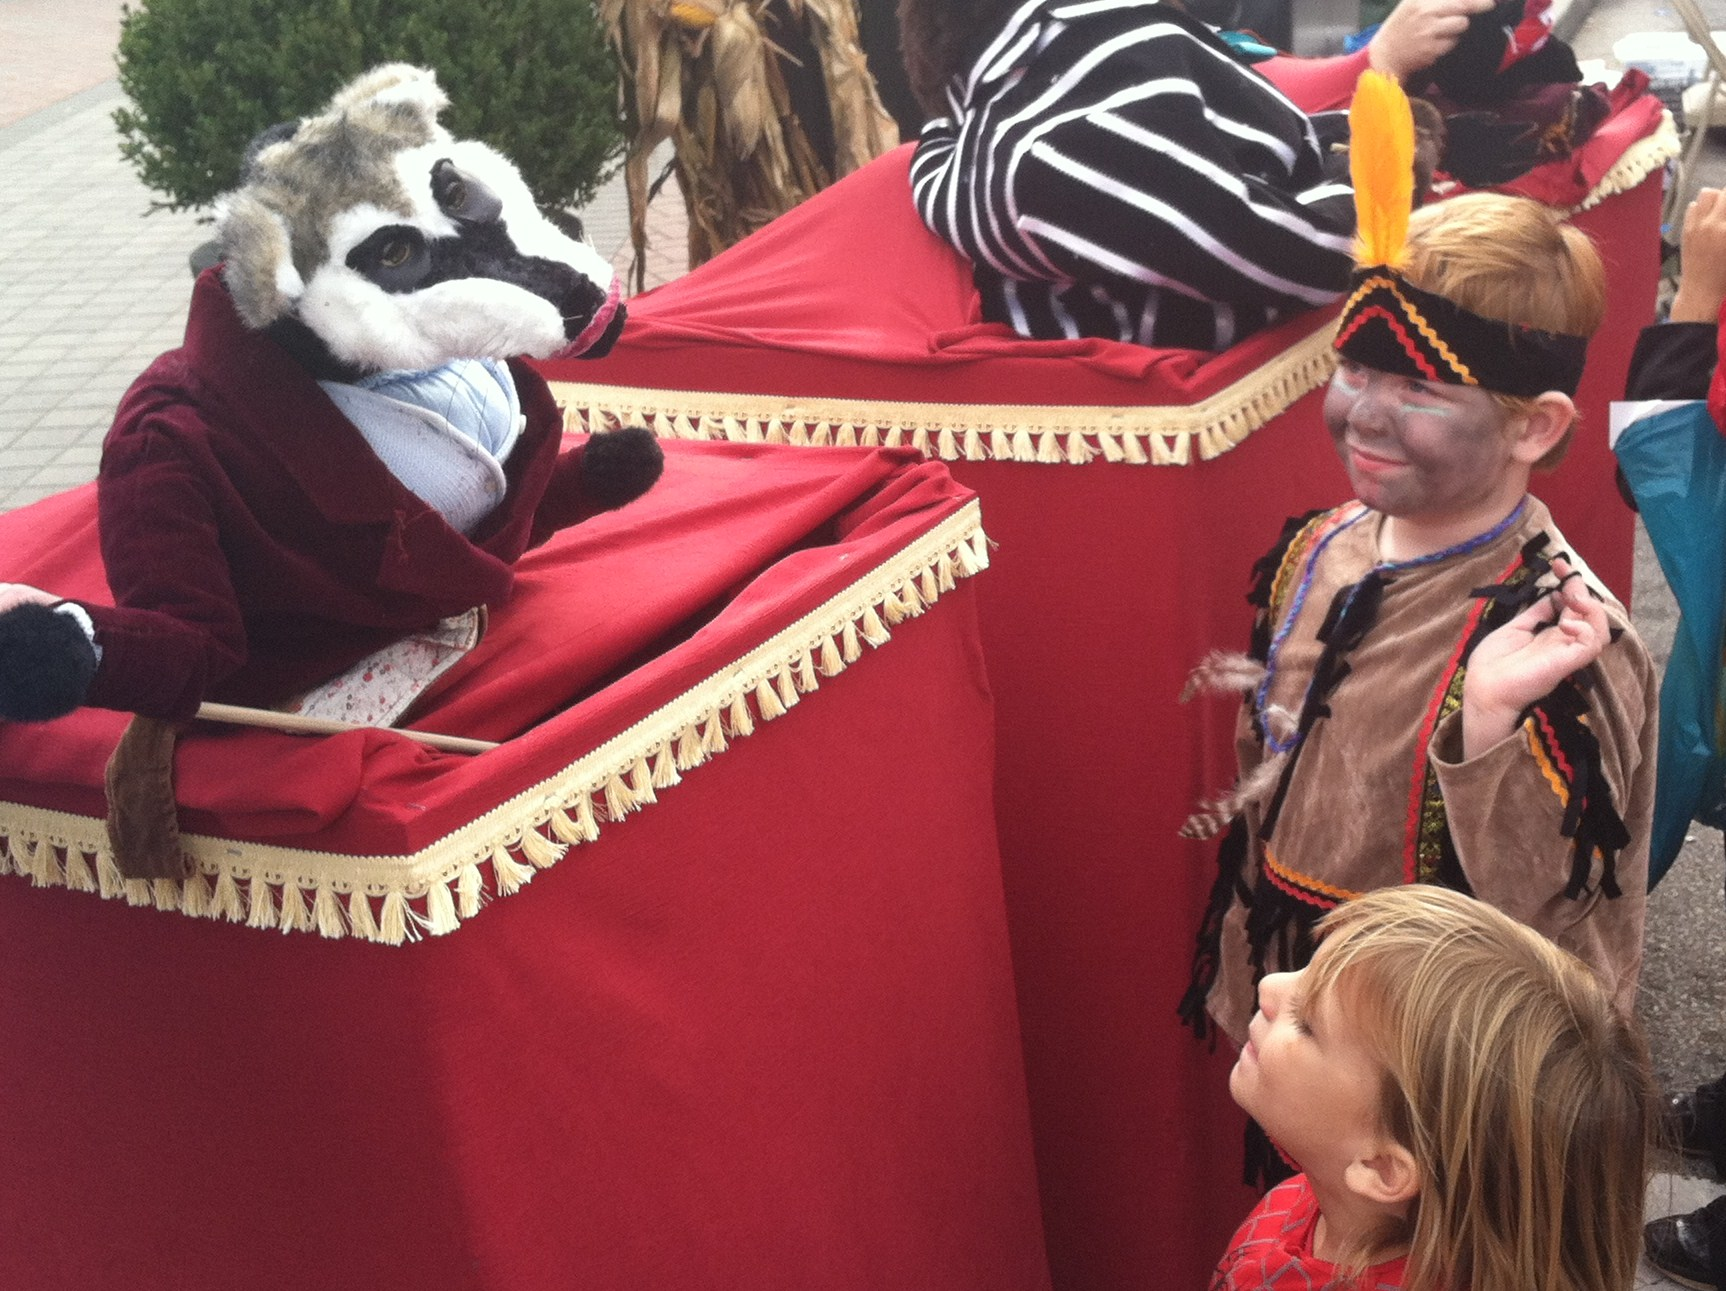 OWTK PHILLY LOCAL: East Passyunk Avenue's 2013 Spooky Saturday and Fall Festival